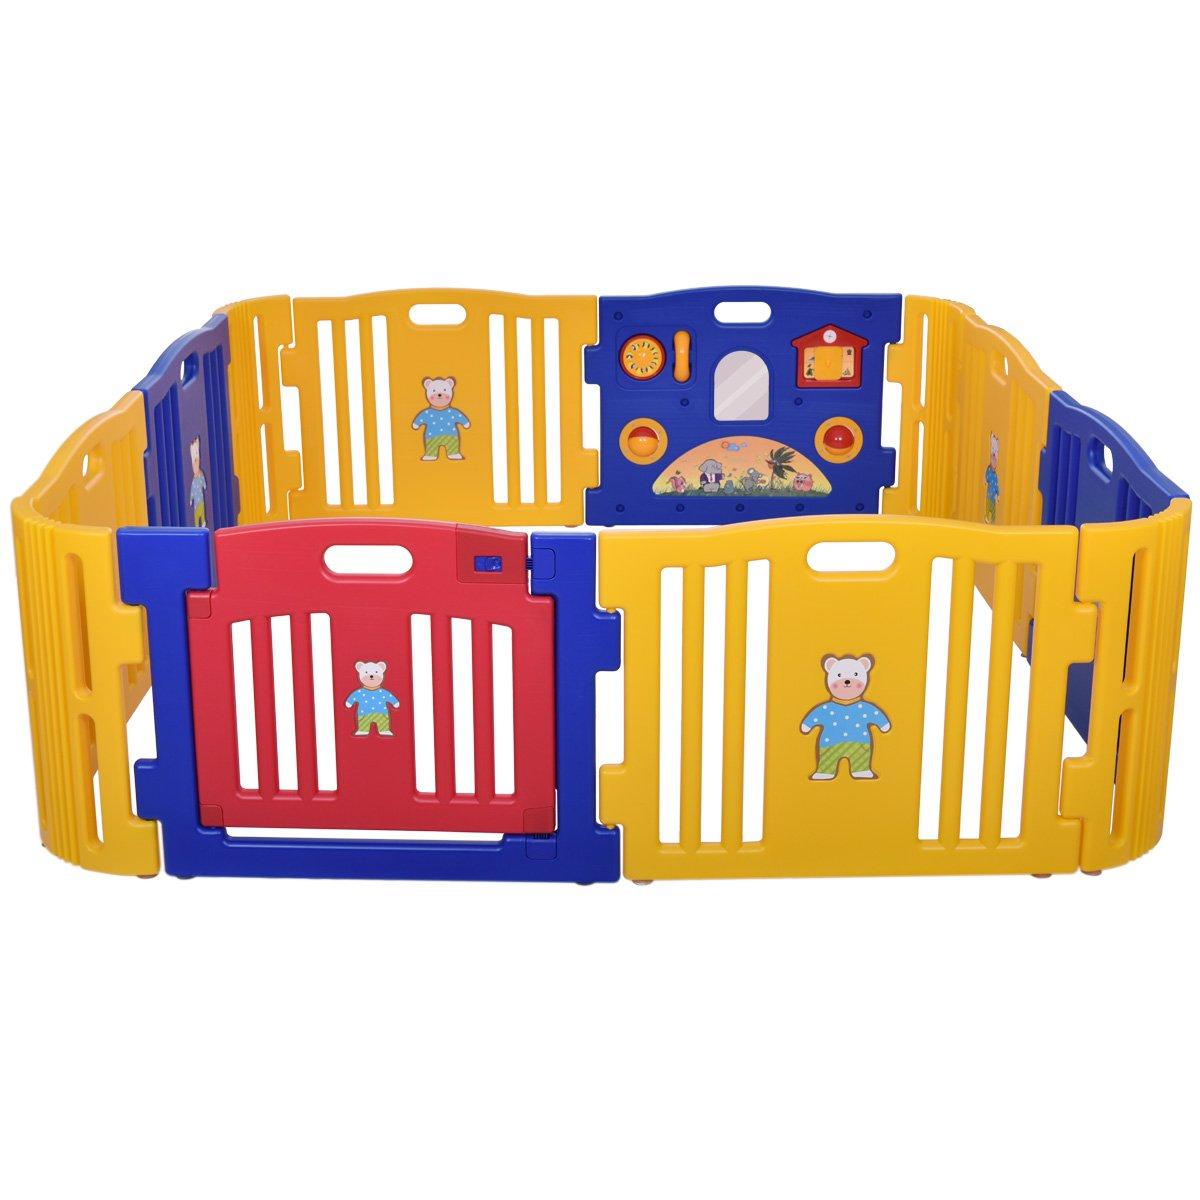 LAZYMOON Baby Playpen Kids 8 4 Panel Safety Play Center Yard Home Indoor Outdoor Fence